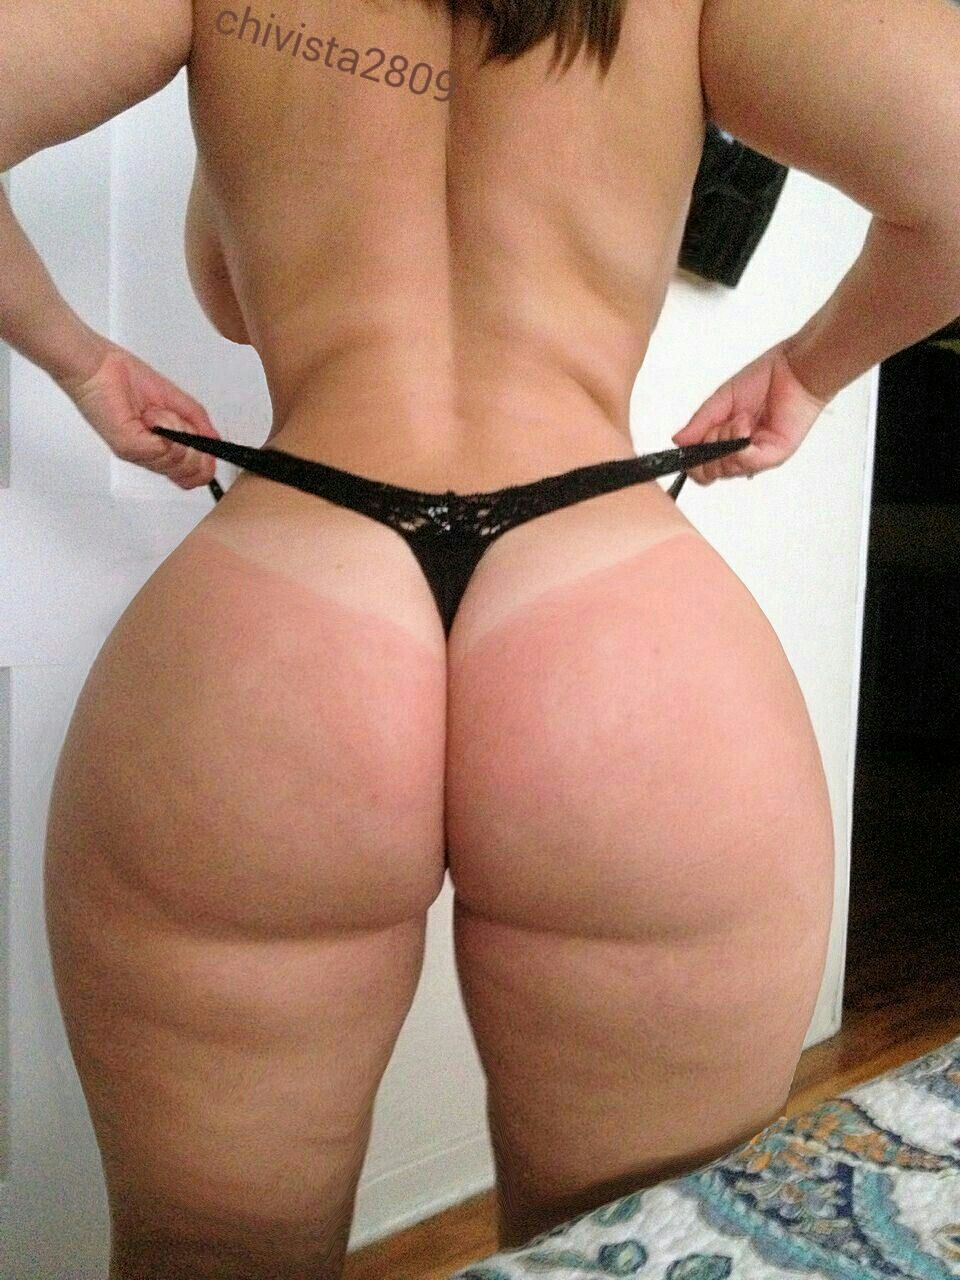 Can You Orgasm Out Your Bum